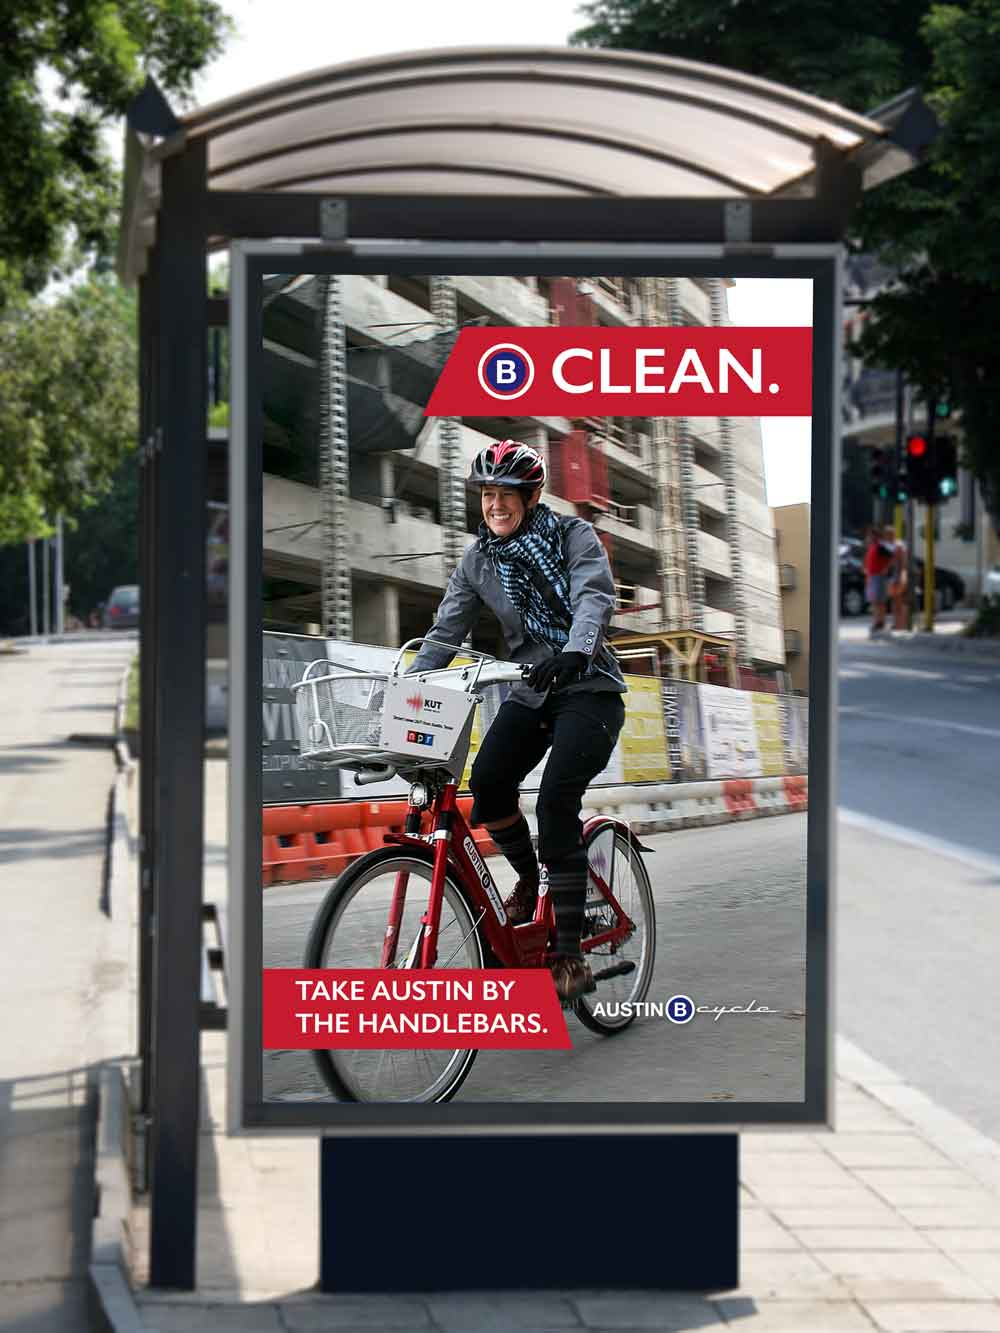 Bus-Stop-Advertisement-B-Clean.png